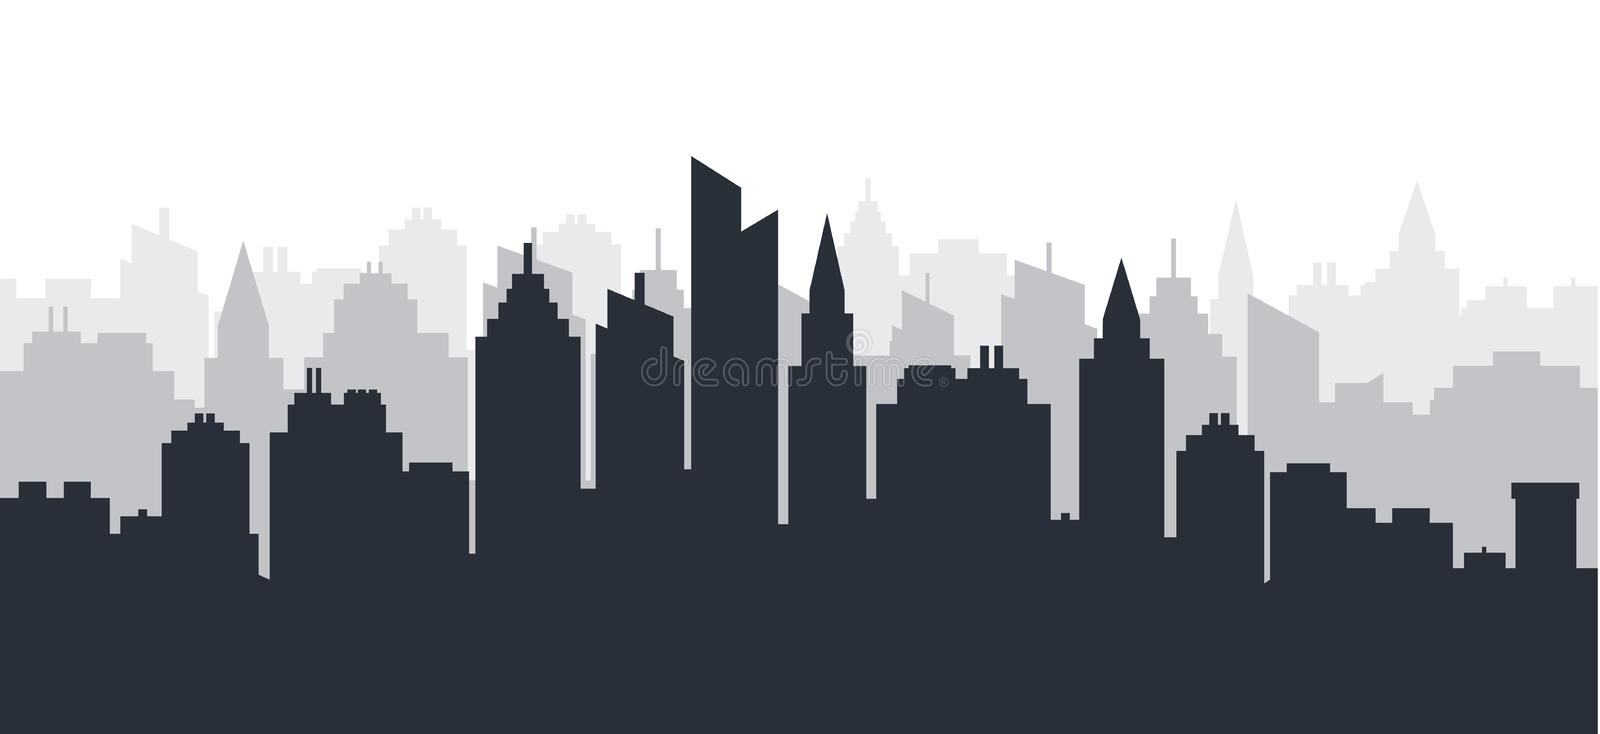 City silhouette land scape. Horizontal City landscape. Downtown Skyline with high skyscrapers. industrial panoramic royalty free illustration